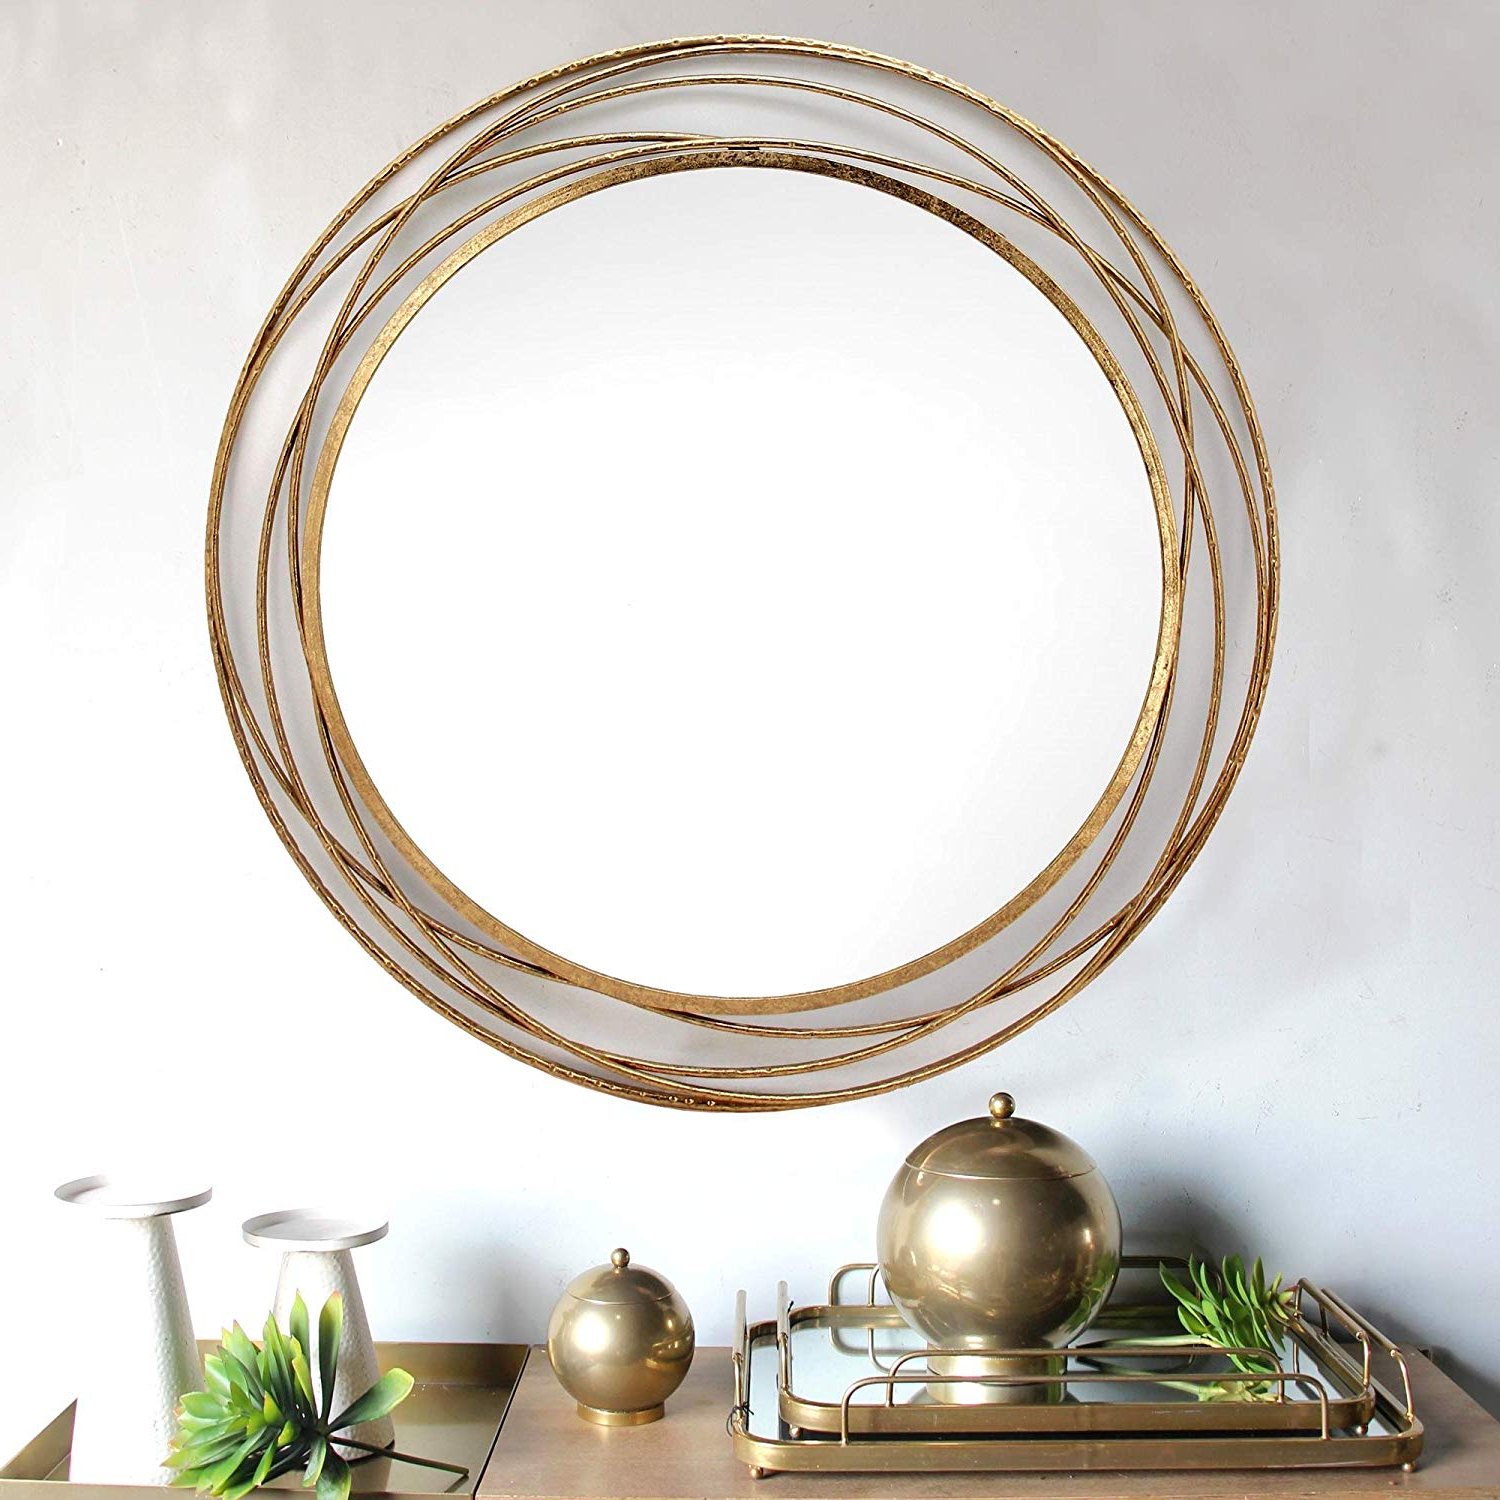 Amazon: Spazio 7109 1 Swirl Wall Mirror, One Size, Antique Gold Intended For Fashionable Swirl Wall Mirrors (View 14 of 20)